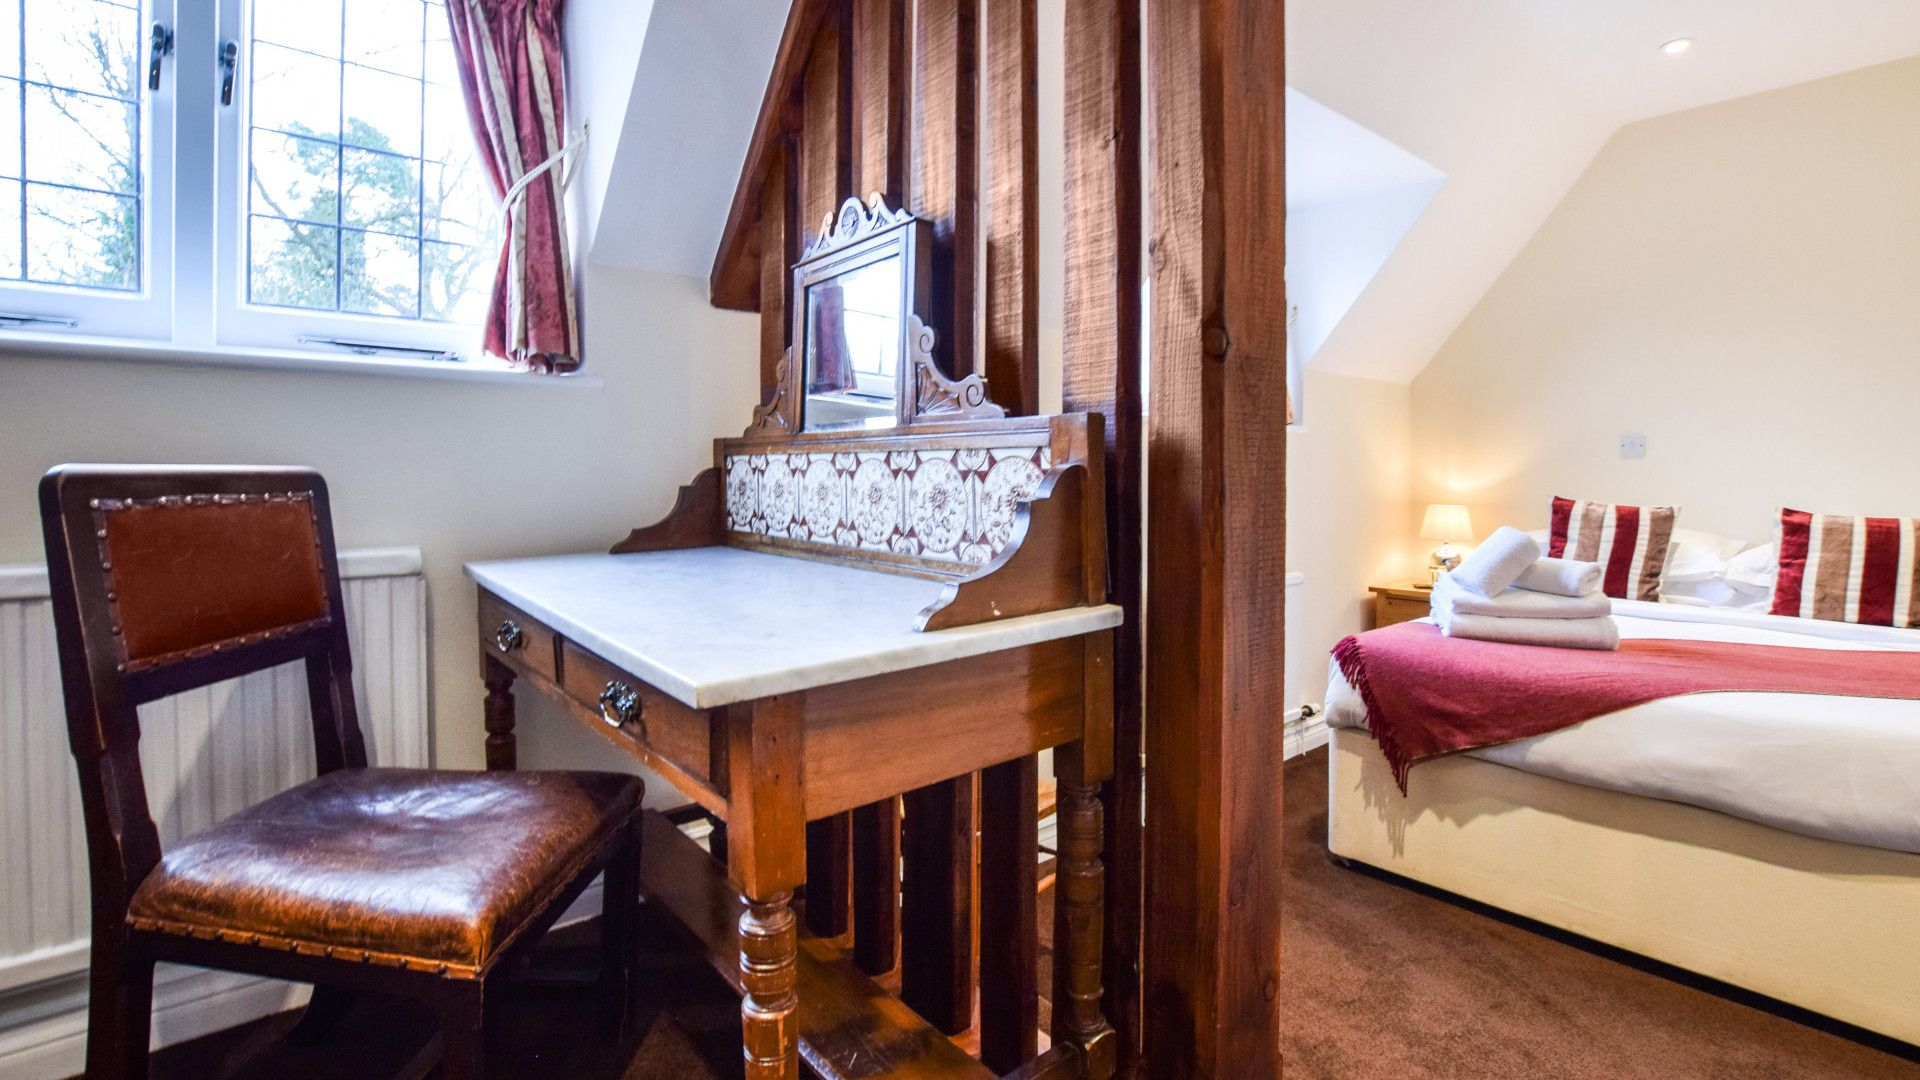 Bedroom 1, Anne Boleyn Cottage at Sudeley Castle, Bolthole Retreats